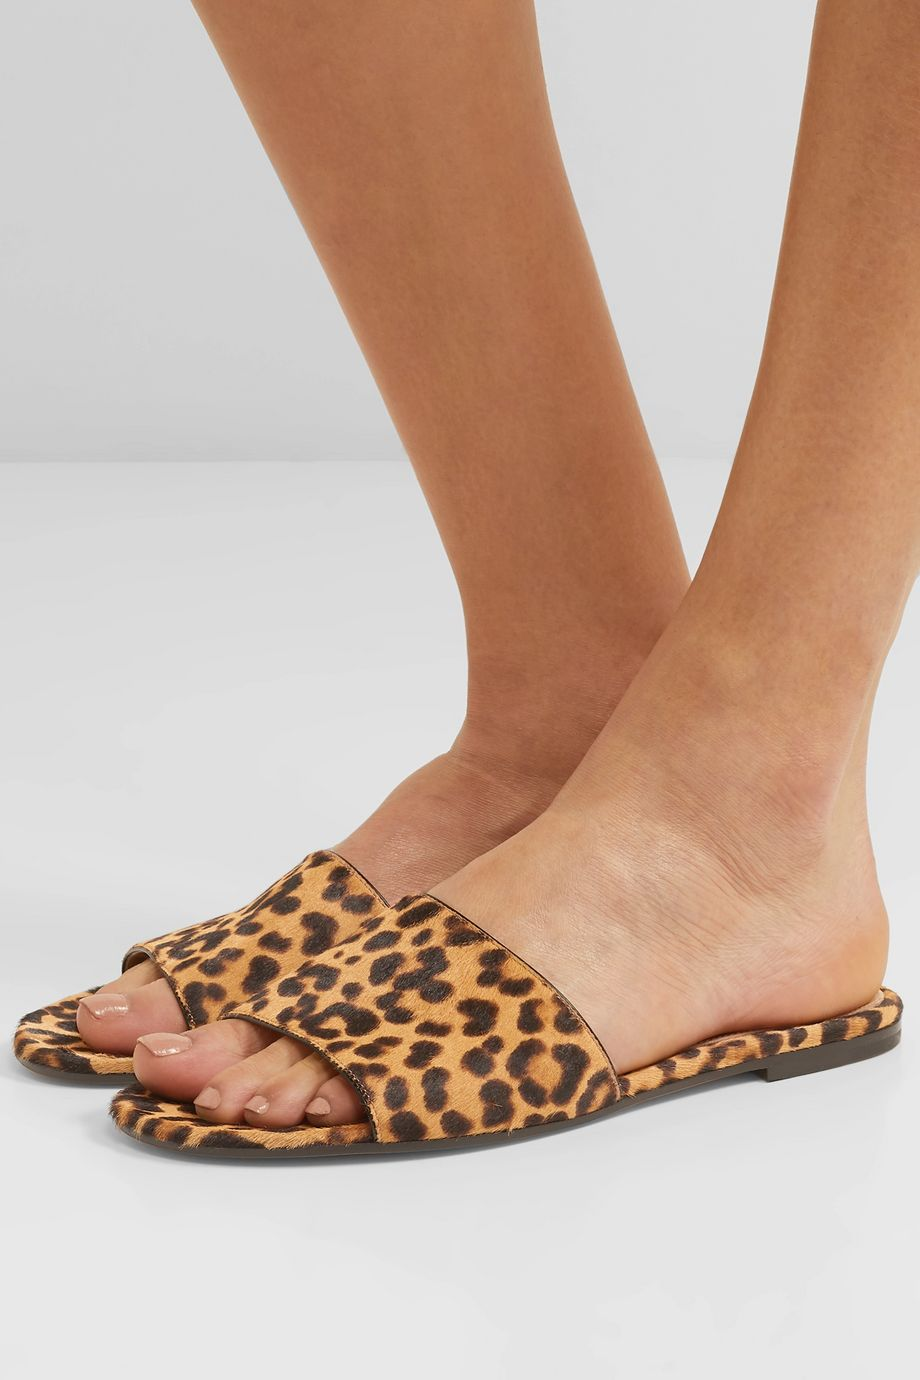 Gianvito Rossi Leopard-print calf hair slides